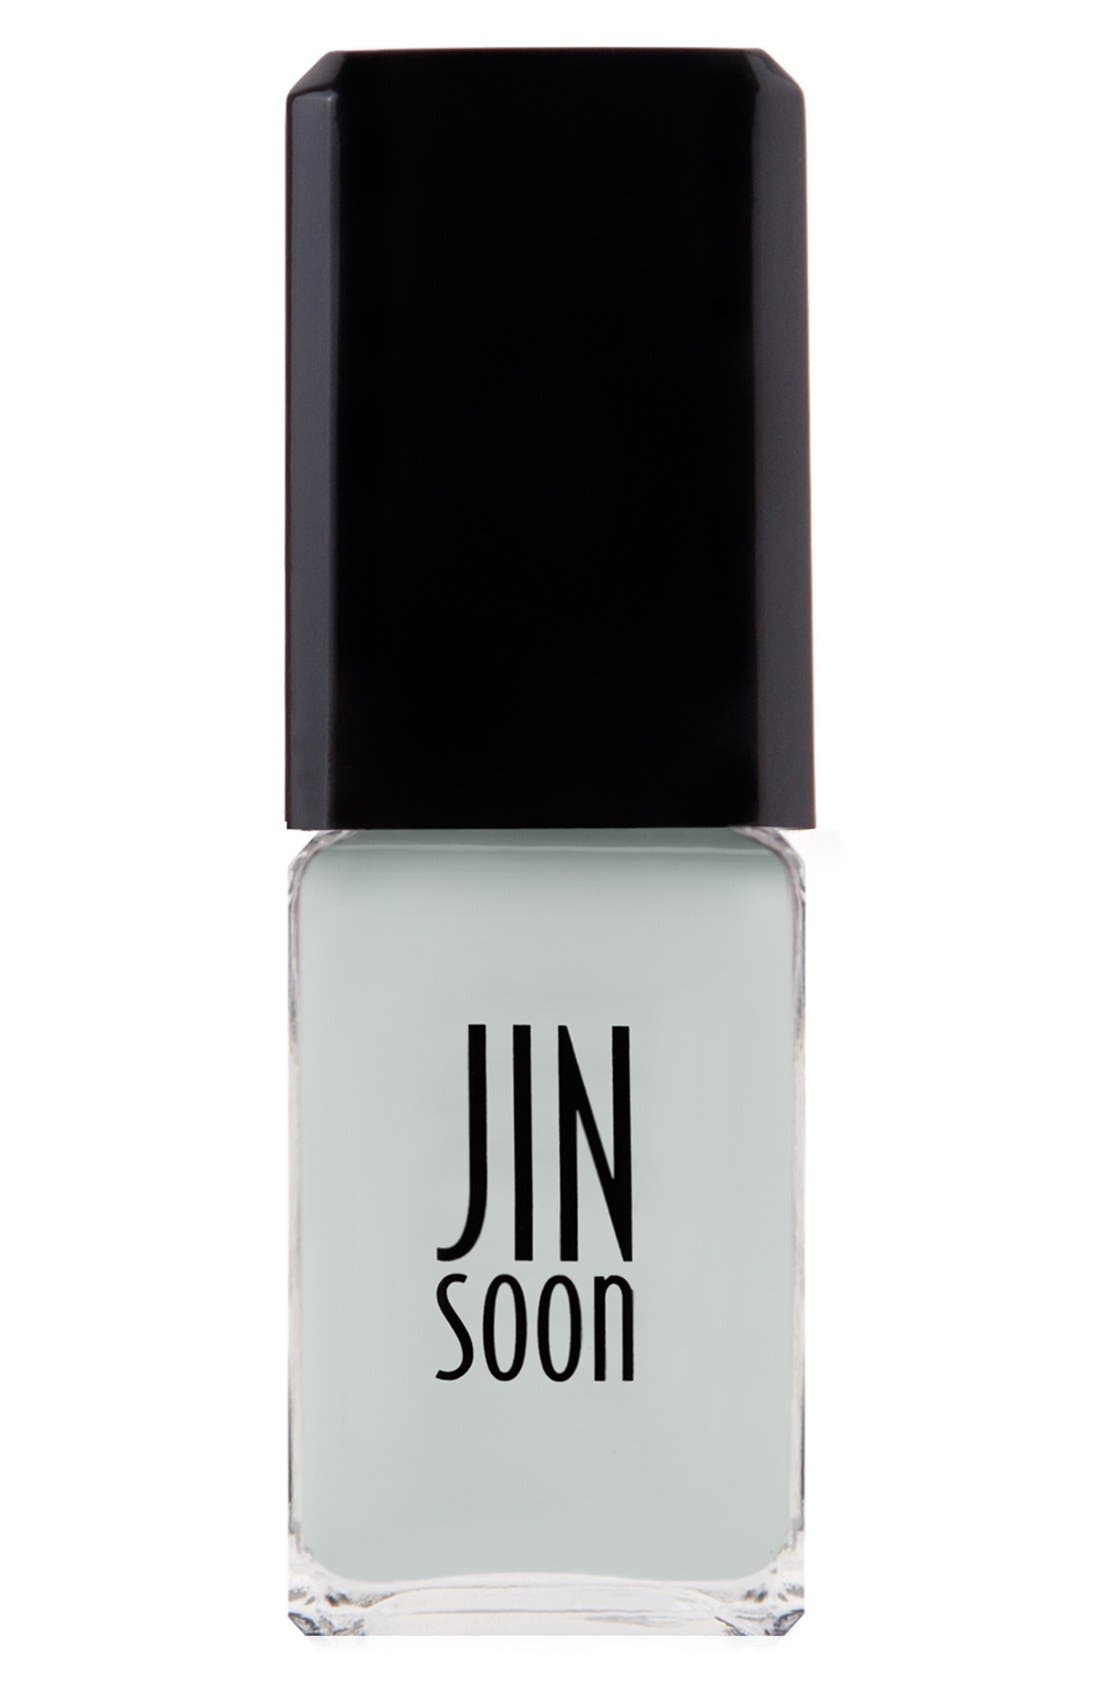 JINsoon 'Kookie White' Nail Lacquer